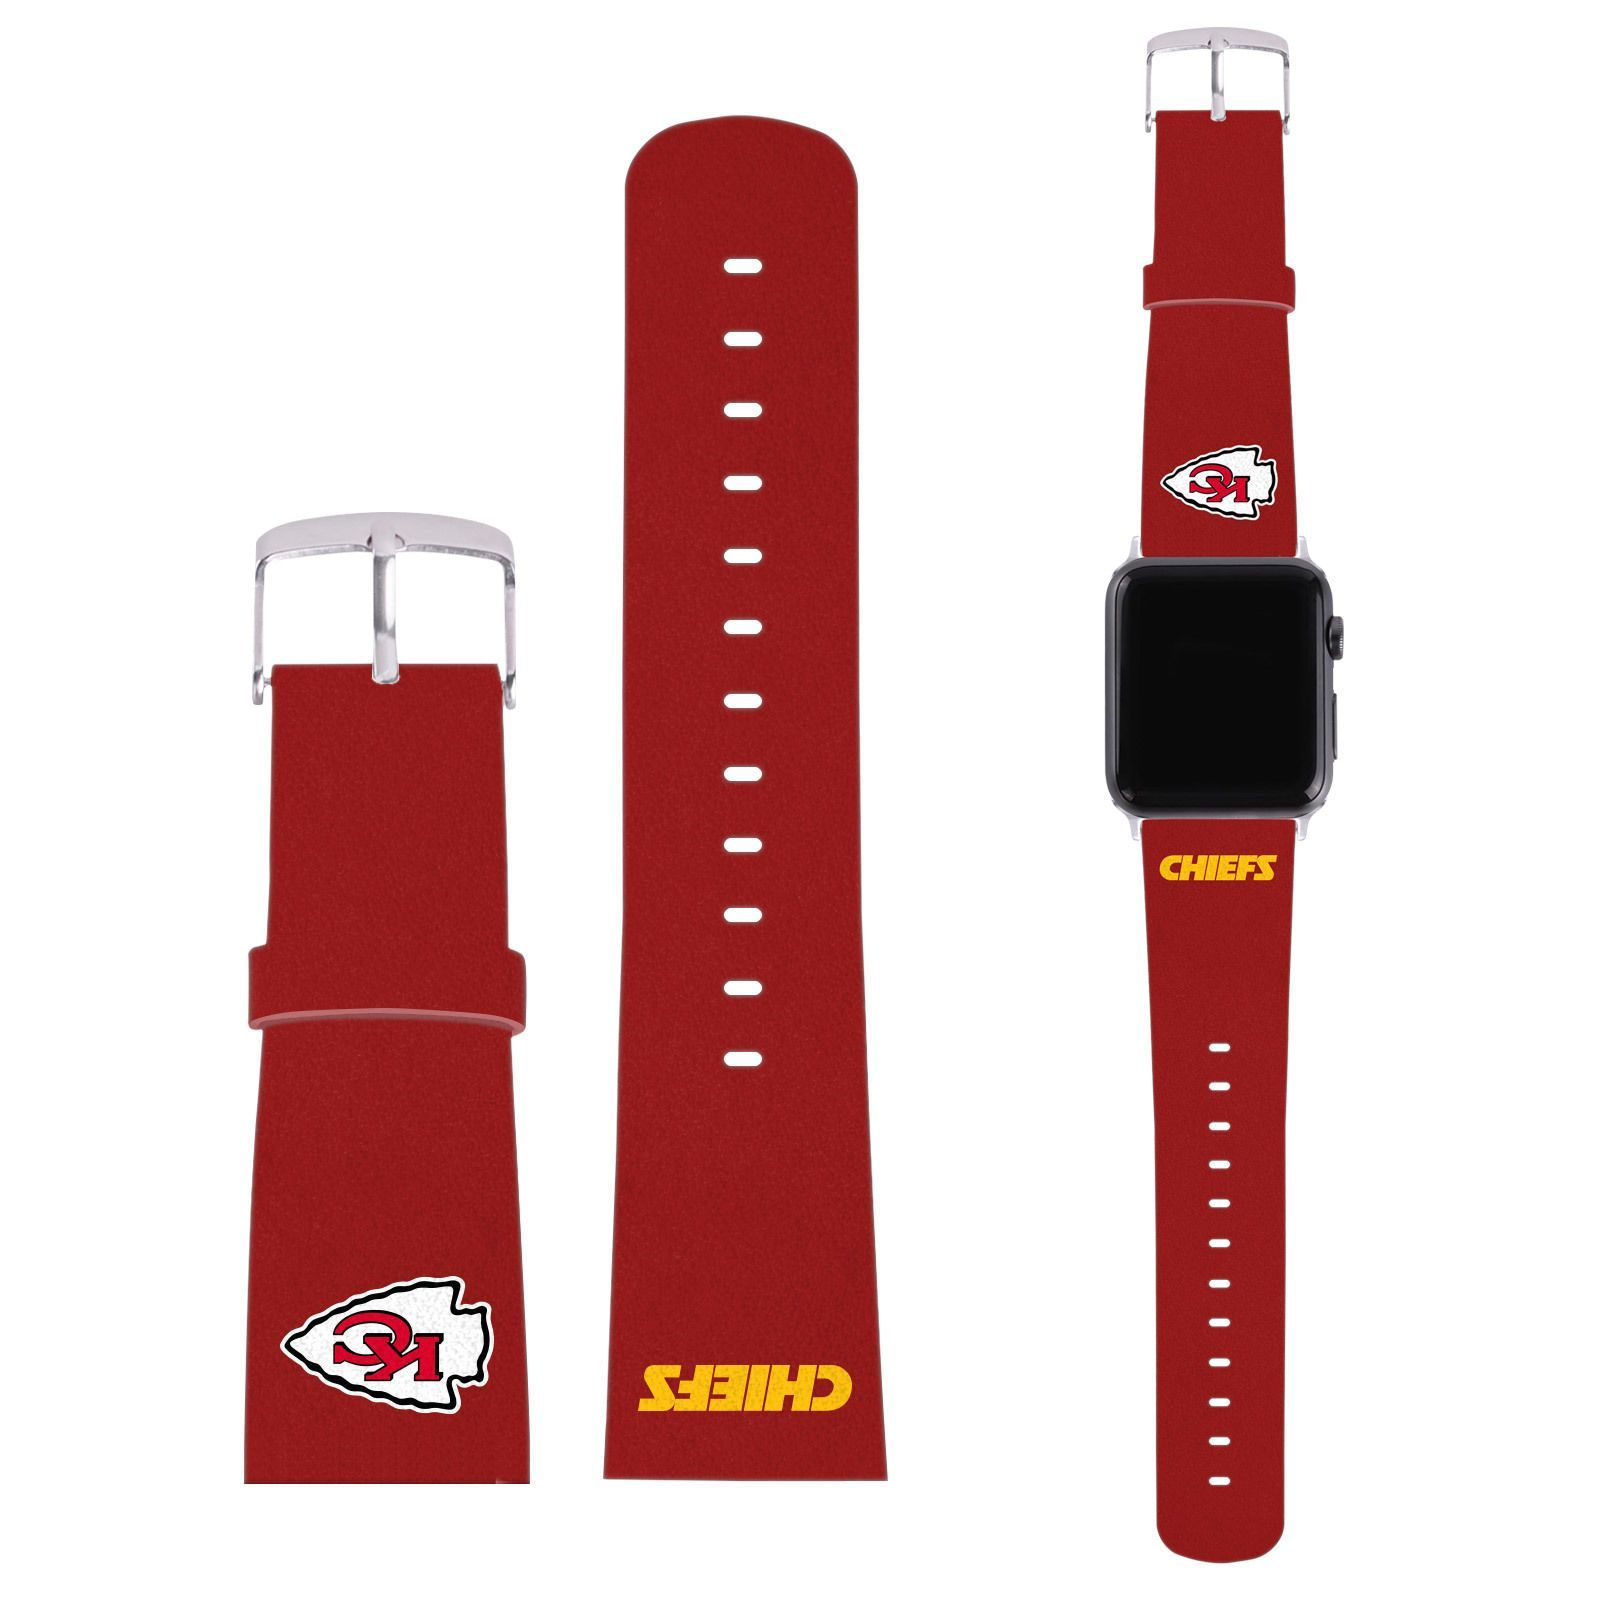 Official Nfl Kansas City Chiefs Logo Red Leather Strap For Apple Watch Sport Apple Watch Sport Oakland Raiders Logo Black Leather Strap